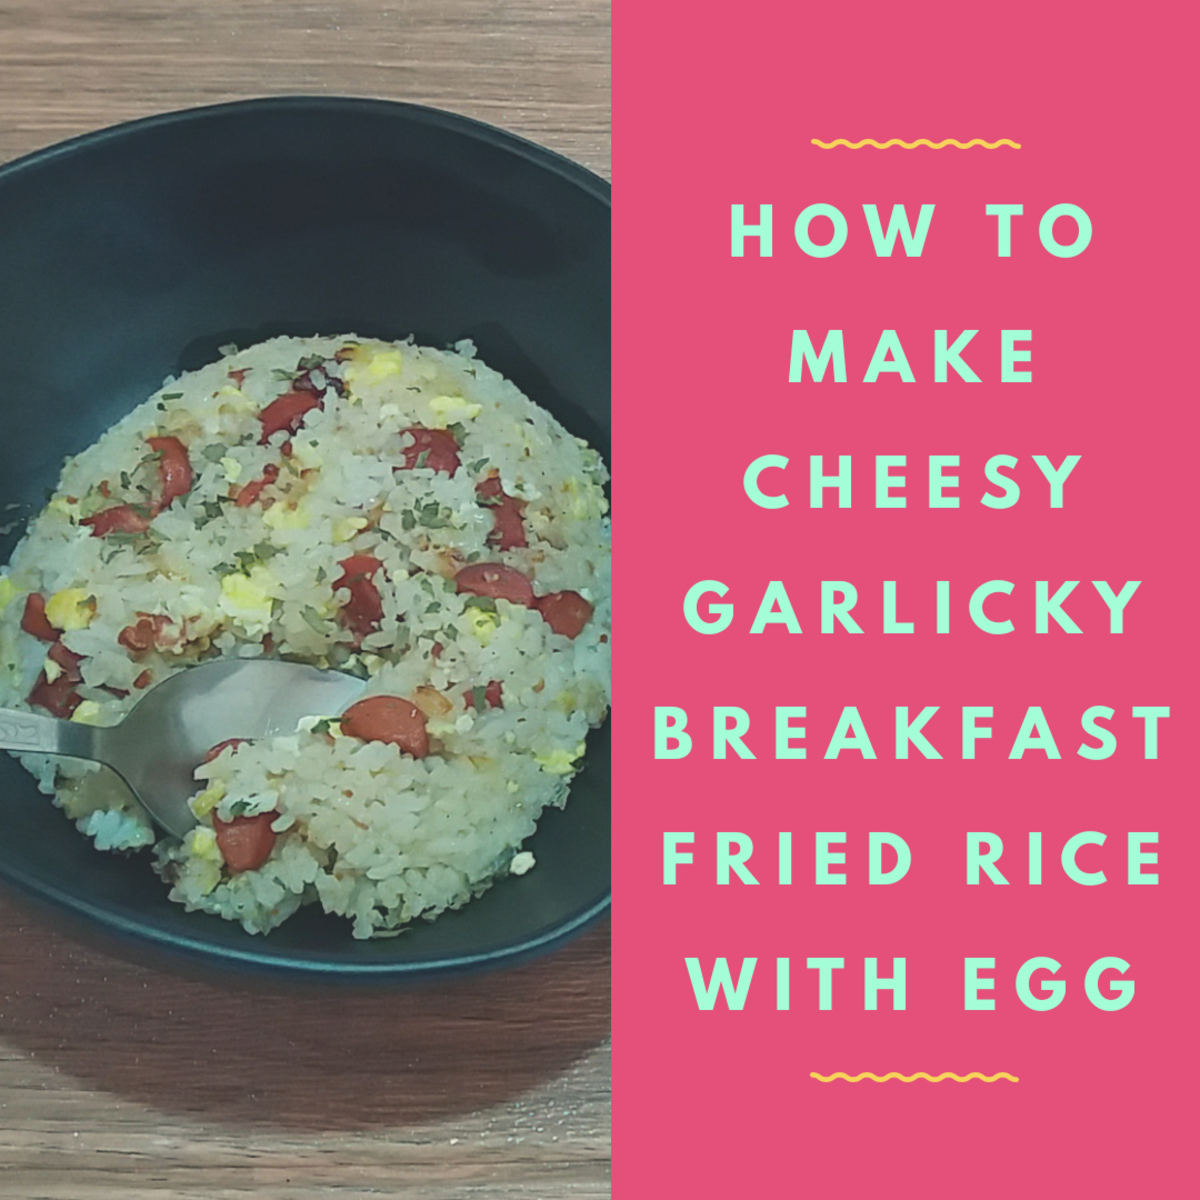 how to make cheesy garlicky breakfast fried rice with egg